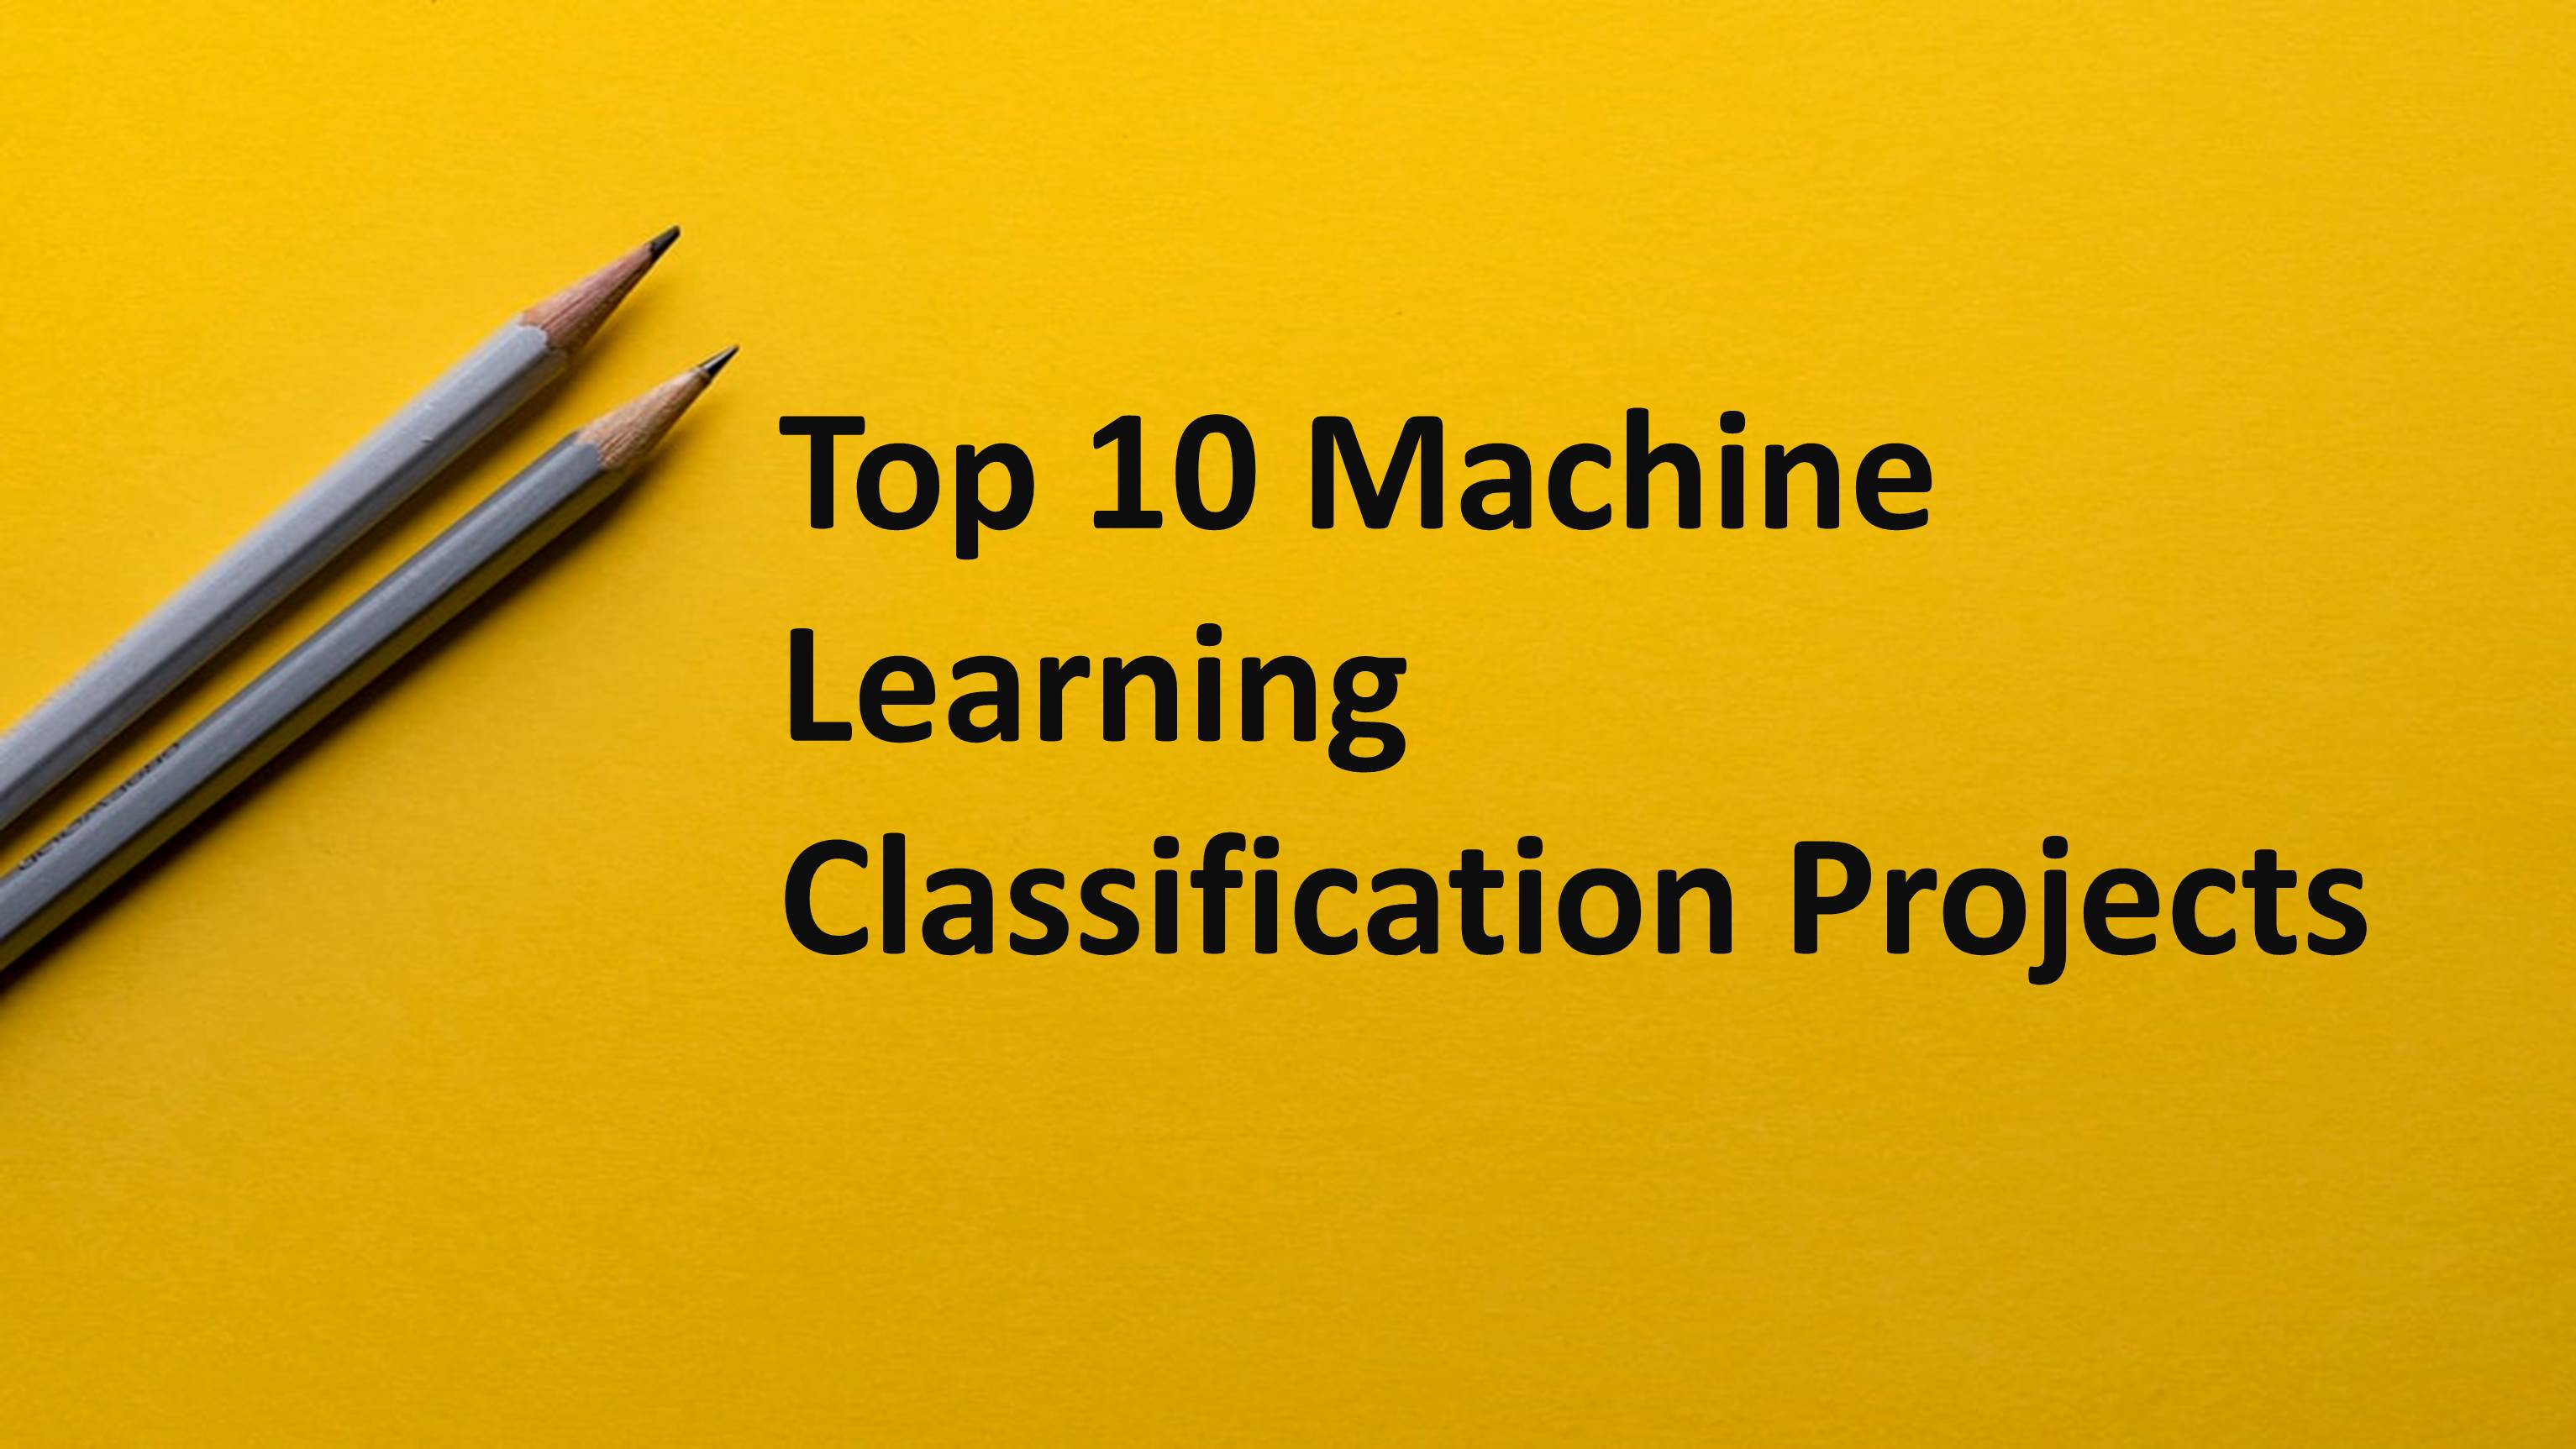 Top 10 Machine Learning Classification Projects